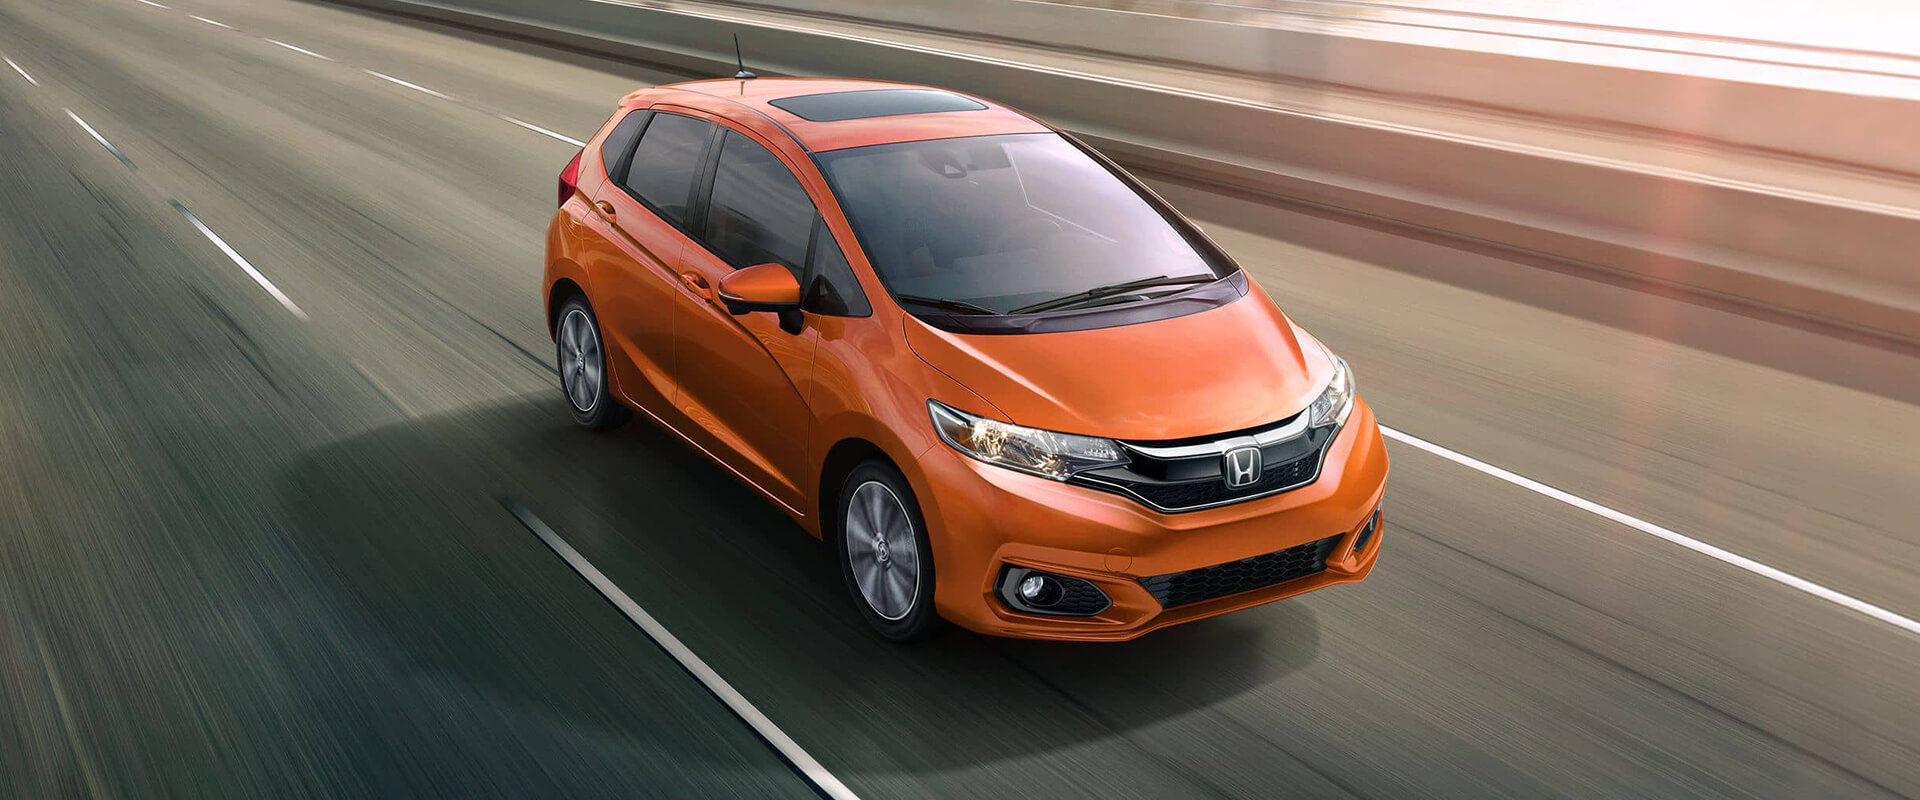 2019 honda fit central alabama honda dealers for Tameron honda gadsden al